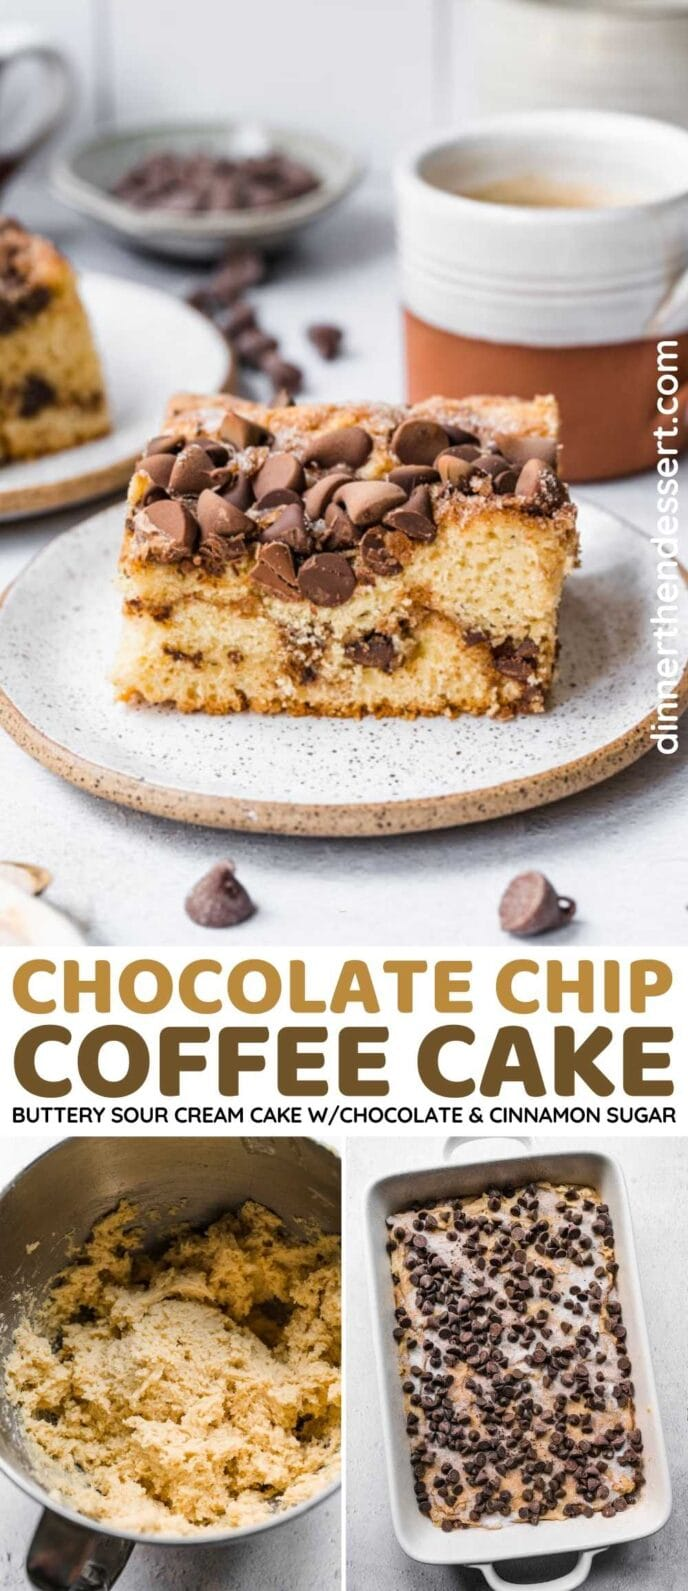 Chocolate Chip Coffee Cake Collage